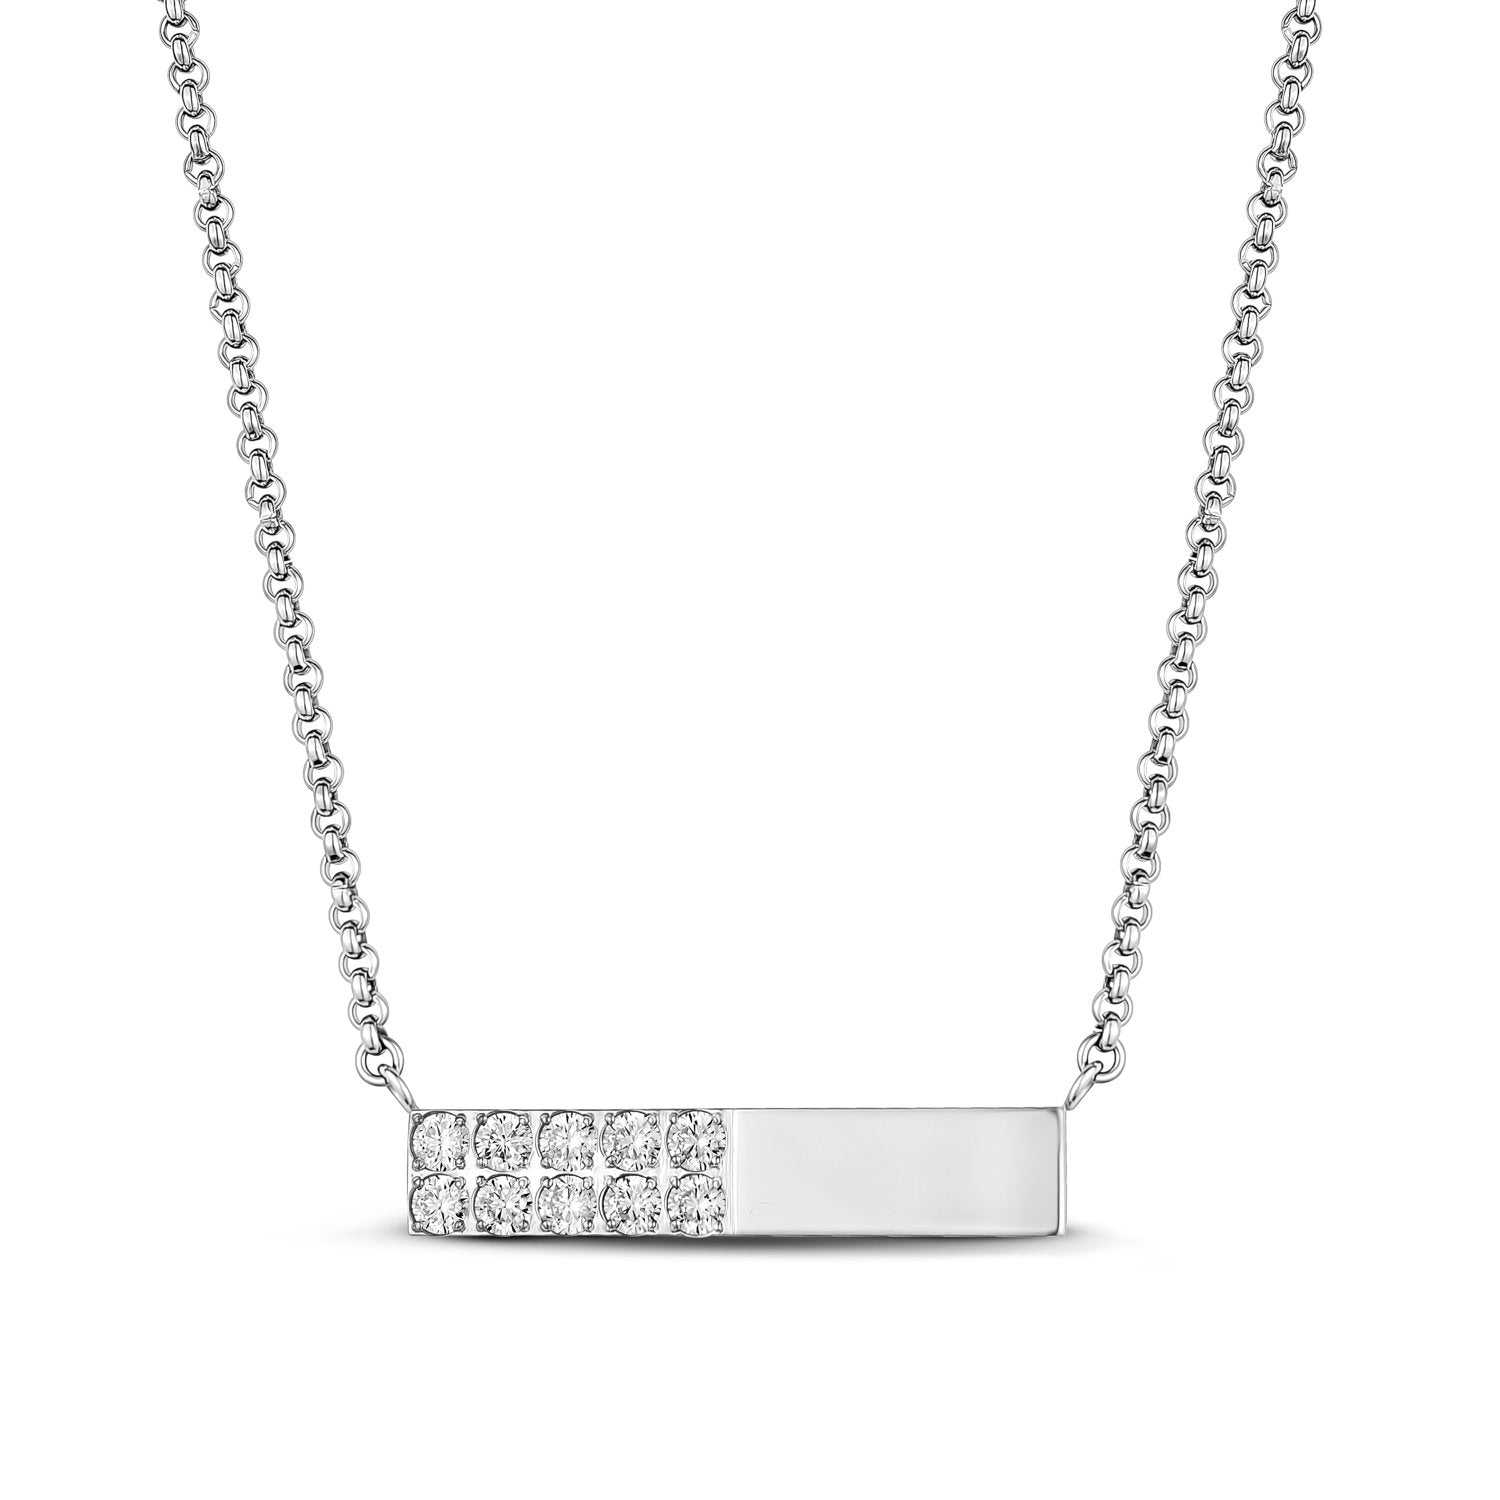 Women's Necklaces - Stainless Steel Cubic Zircon Reversible Bar Necklace - Engravable